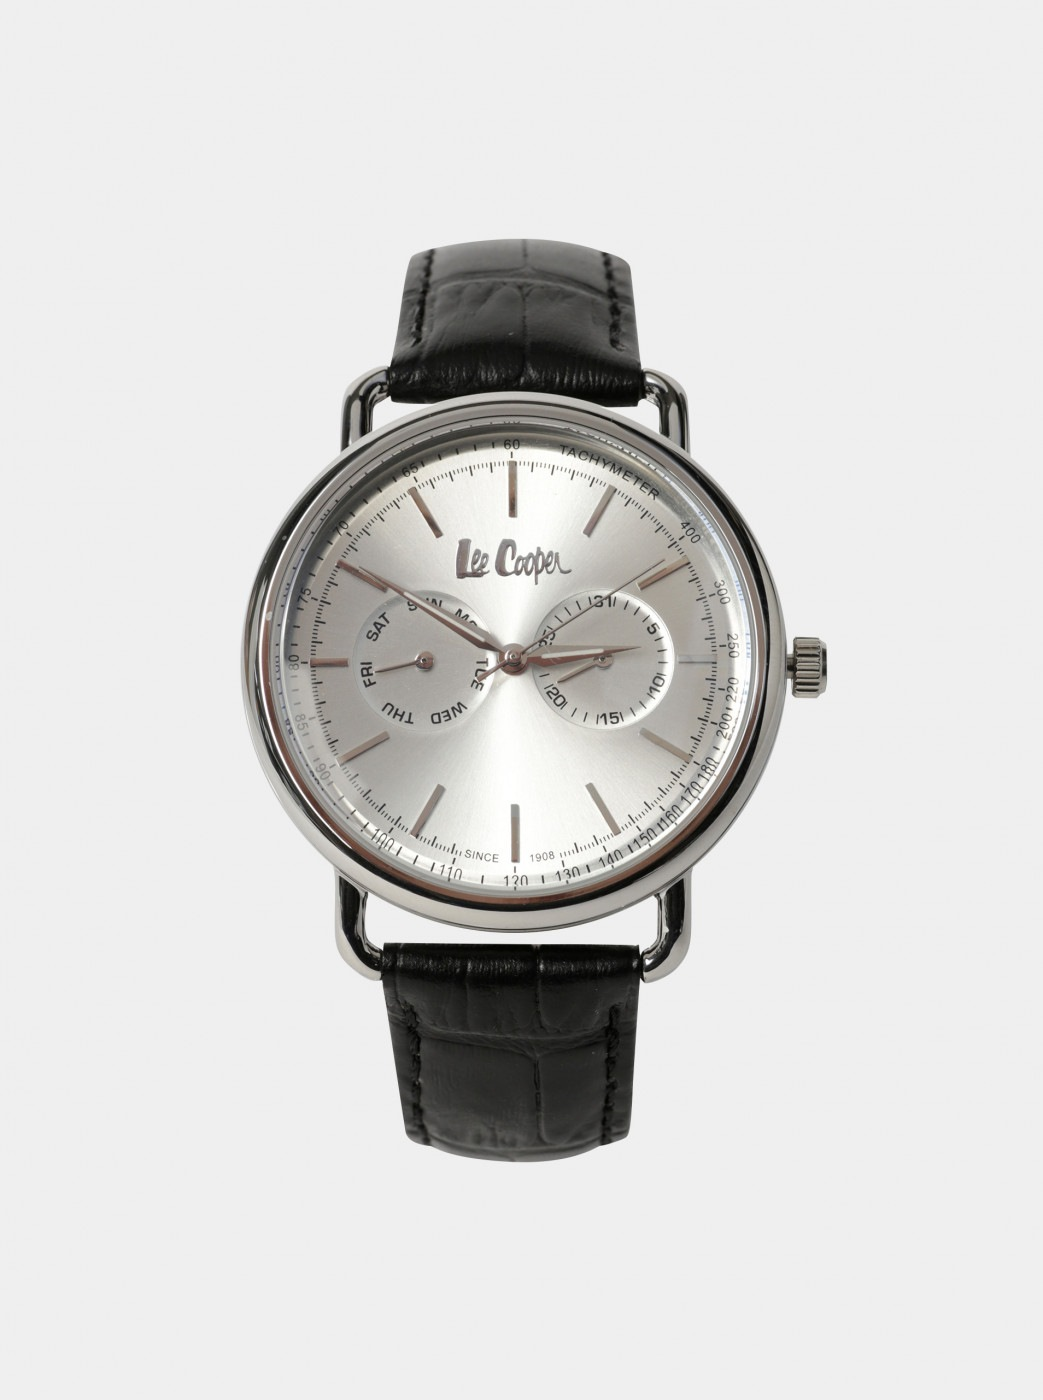 Lee Cooper Men's Watch with Black Leather Belt